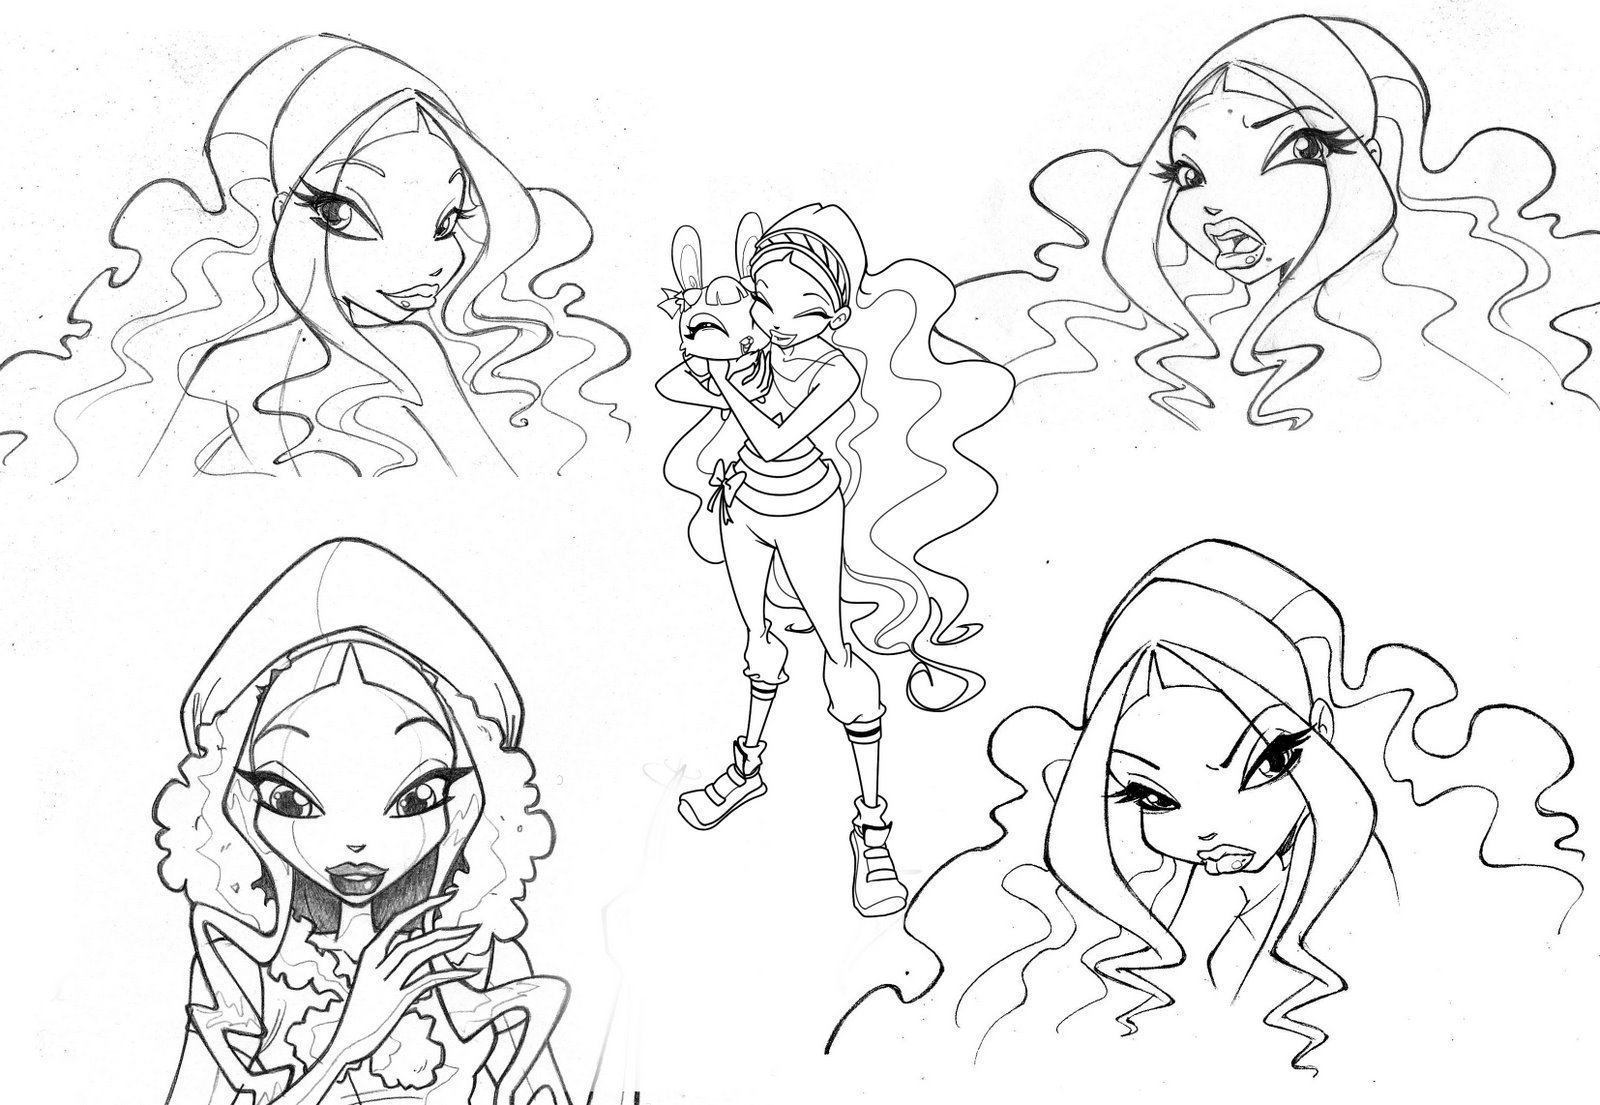 picture winx club winx club my version by eyral on deviantart winx club picture